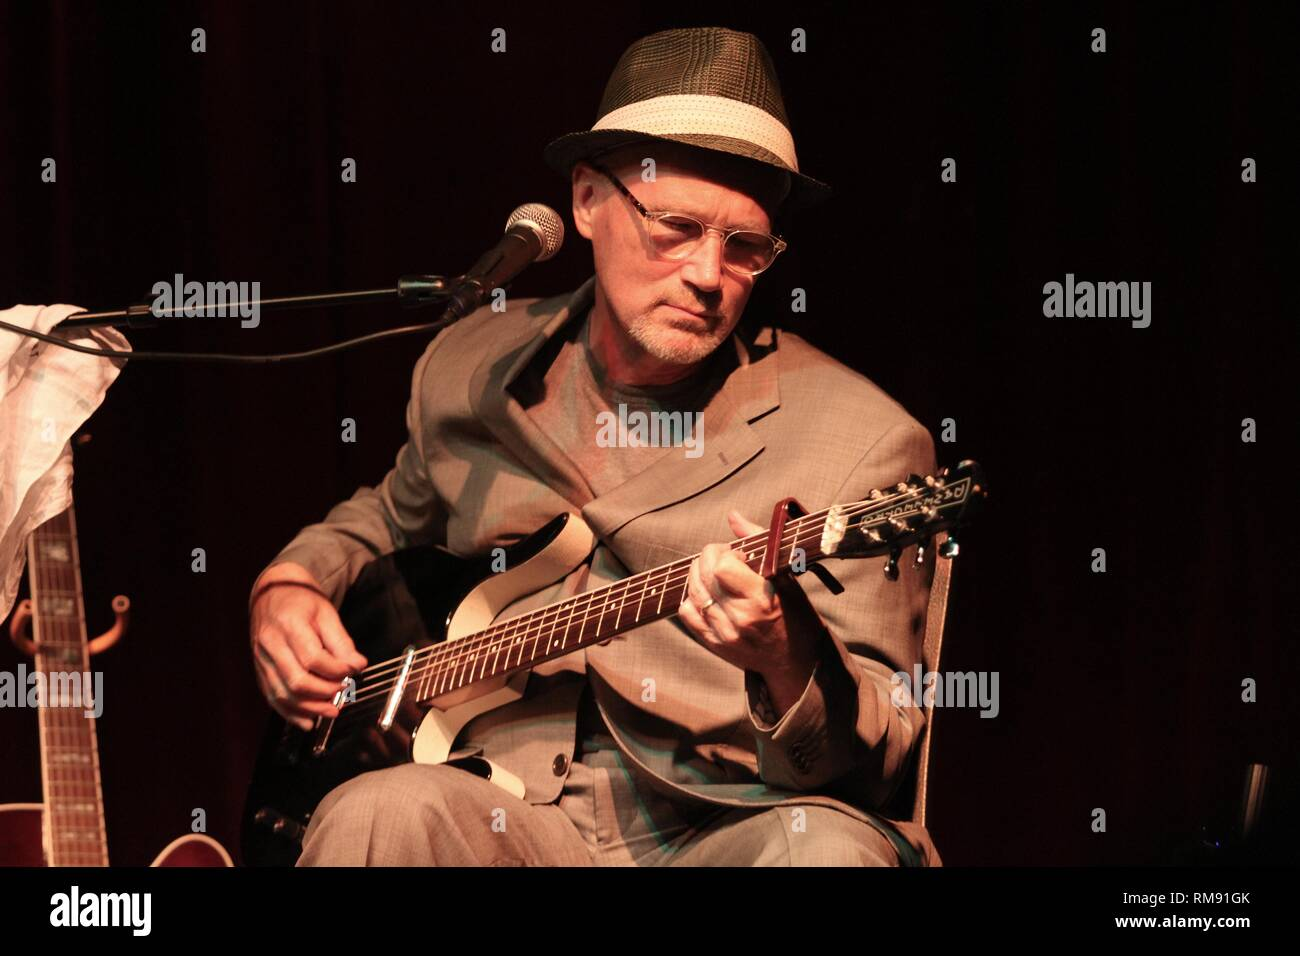 SInger, songwriter and guitarist Marshall Crenshaw is shown performing on stage during a 'live' concert appearance. - Stock Image